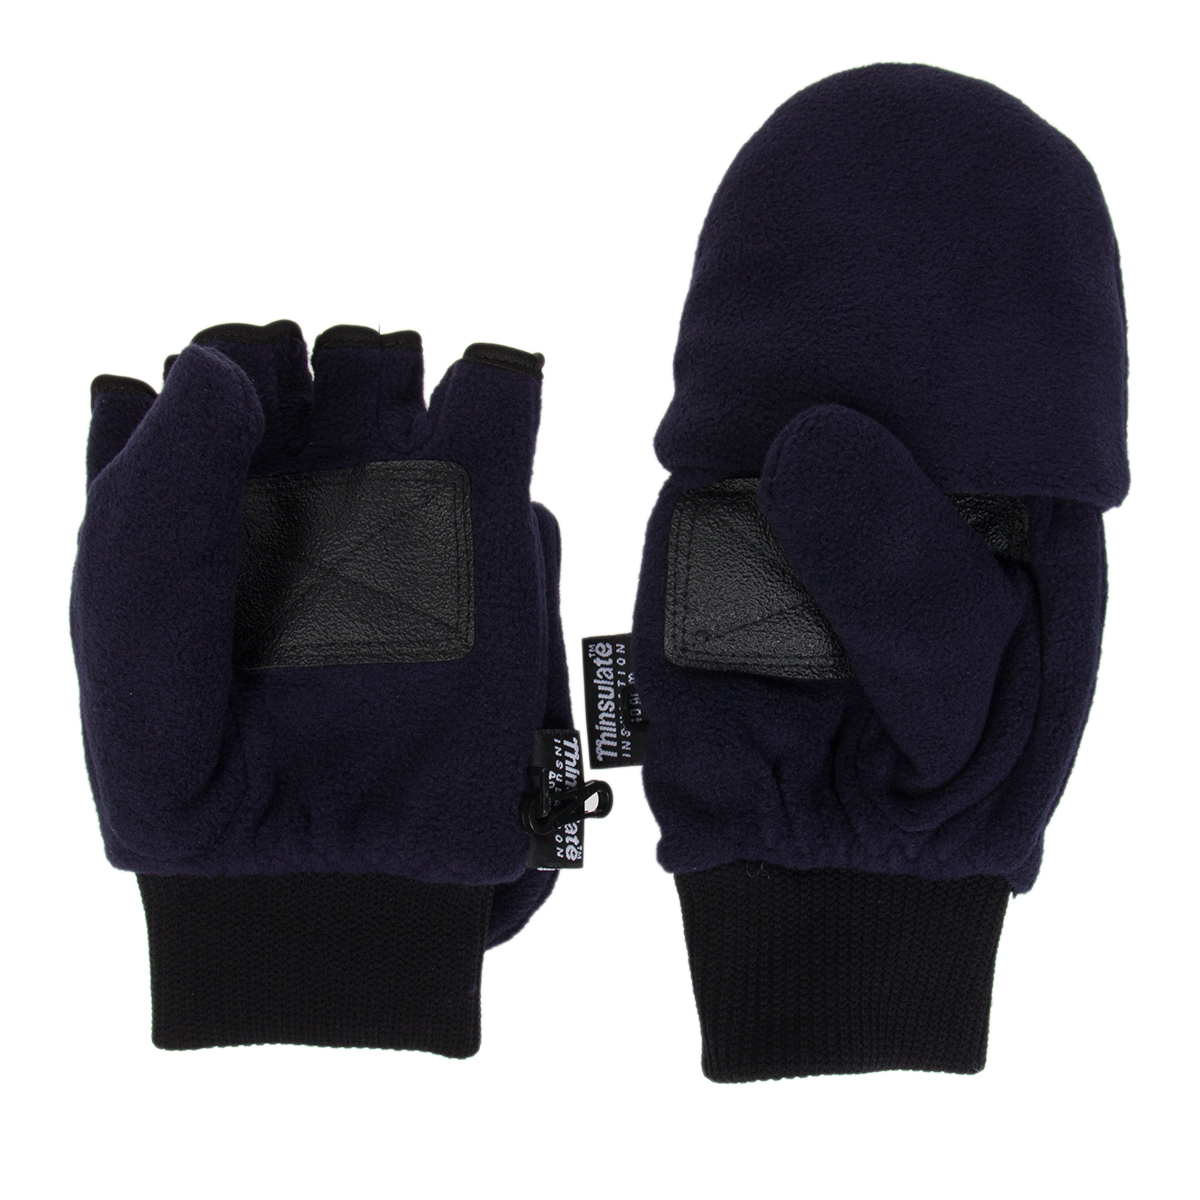 The Manzella Men's Cascade Convertible Fleece Gloves are a heavyweight fleece convertible mitten/glove with flip-mitt versatility for easy use with touch screen devices. Thinsulate insulation and a micro-fleece composition provide cozy warmth.